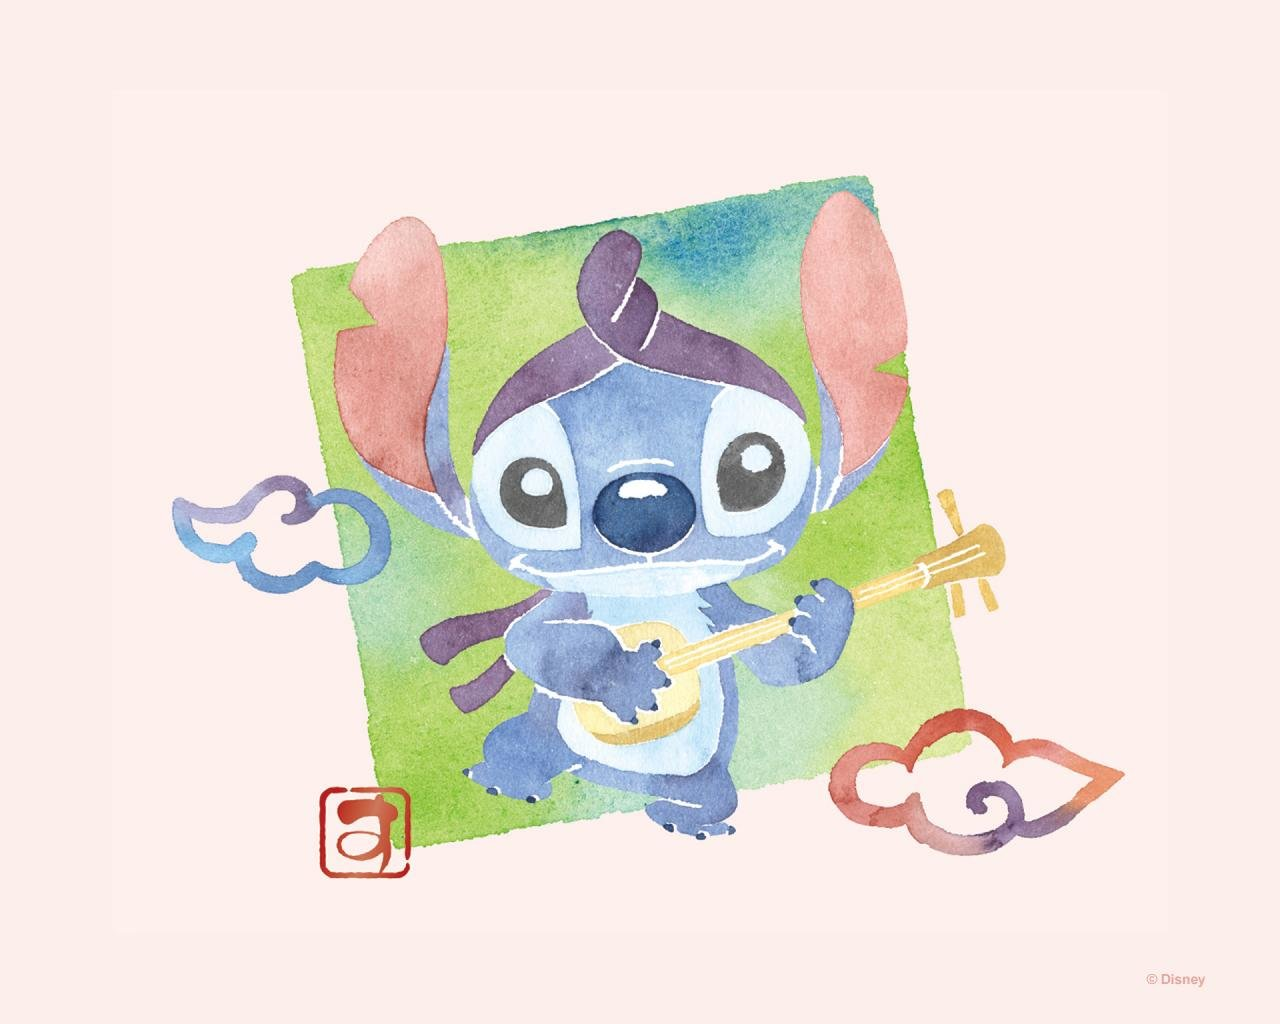 Lilo And Stitch Wallpapers 1280x1024 Desktop Backgrounds